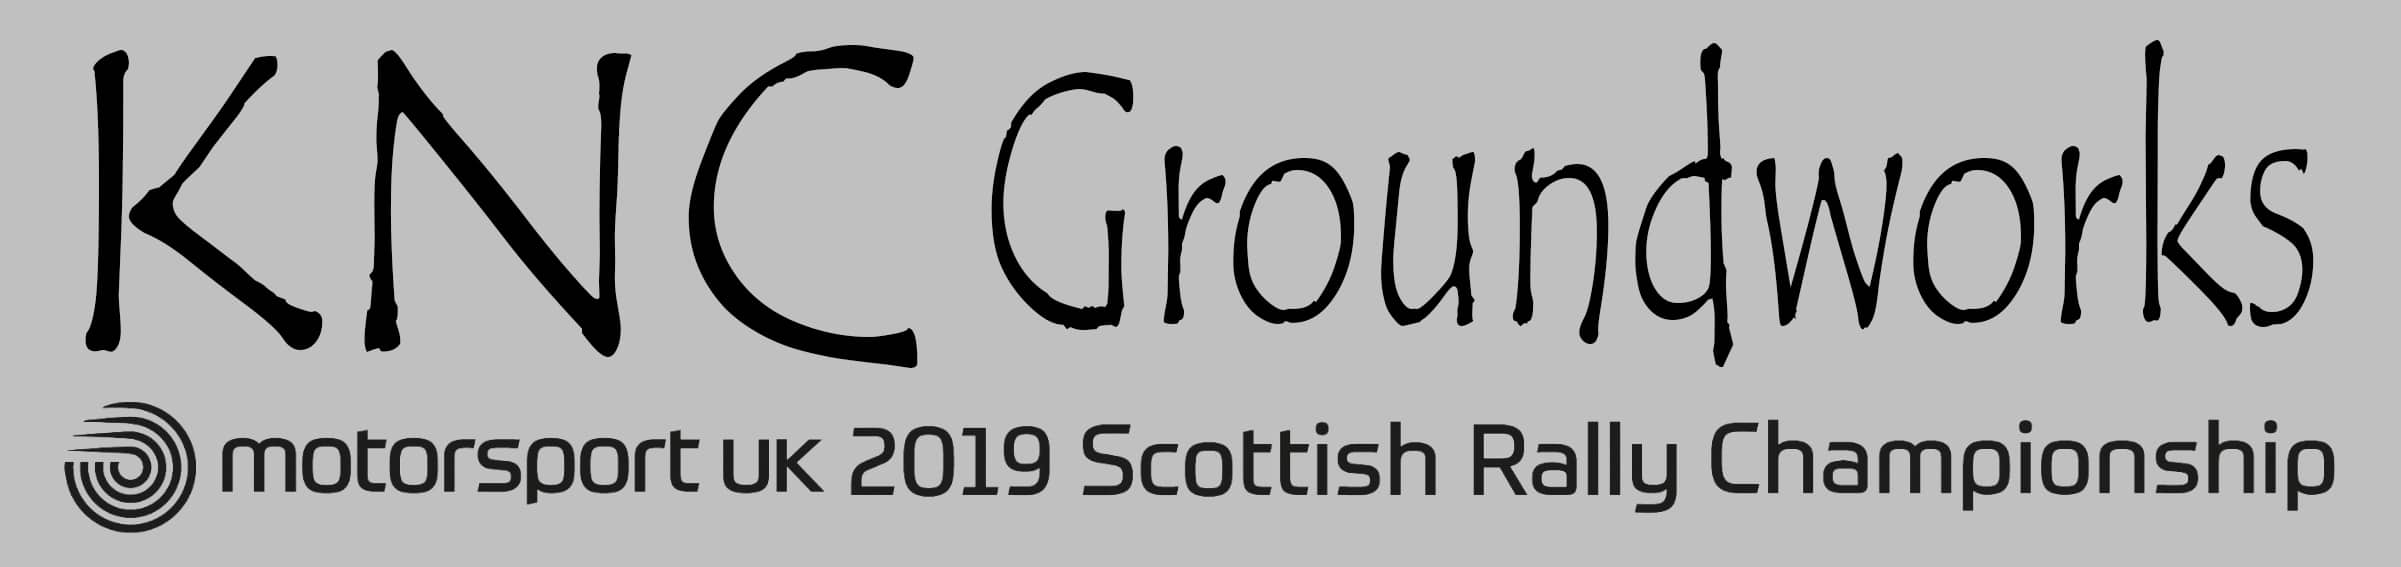 KNC Groundworks Scottish Rally Championship